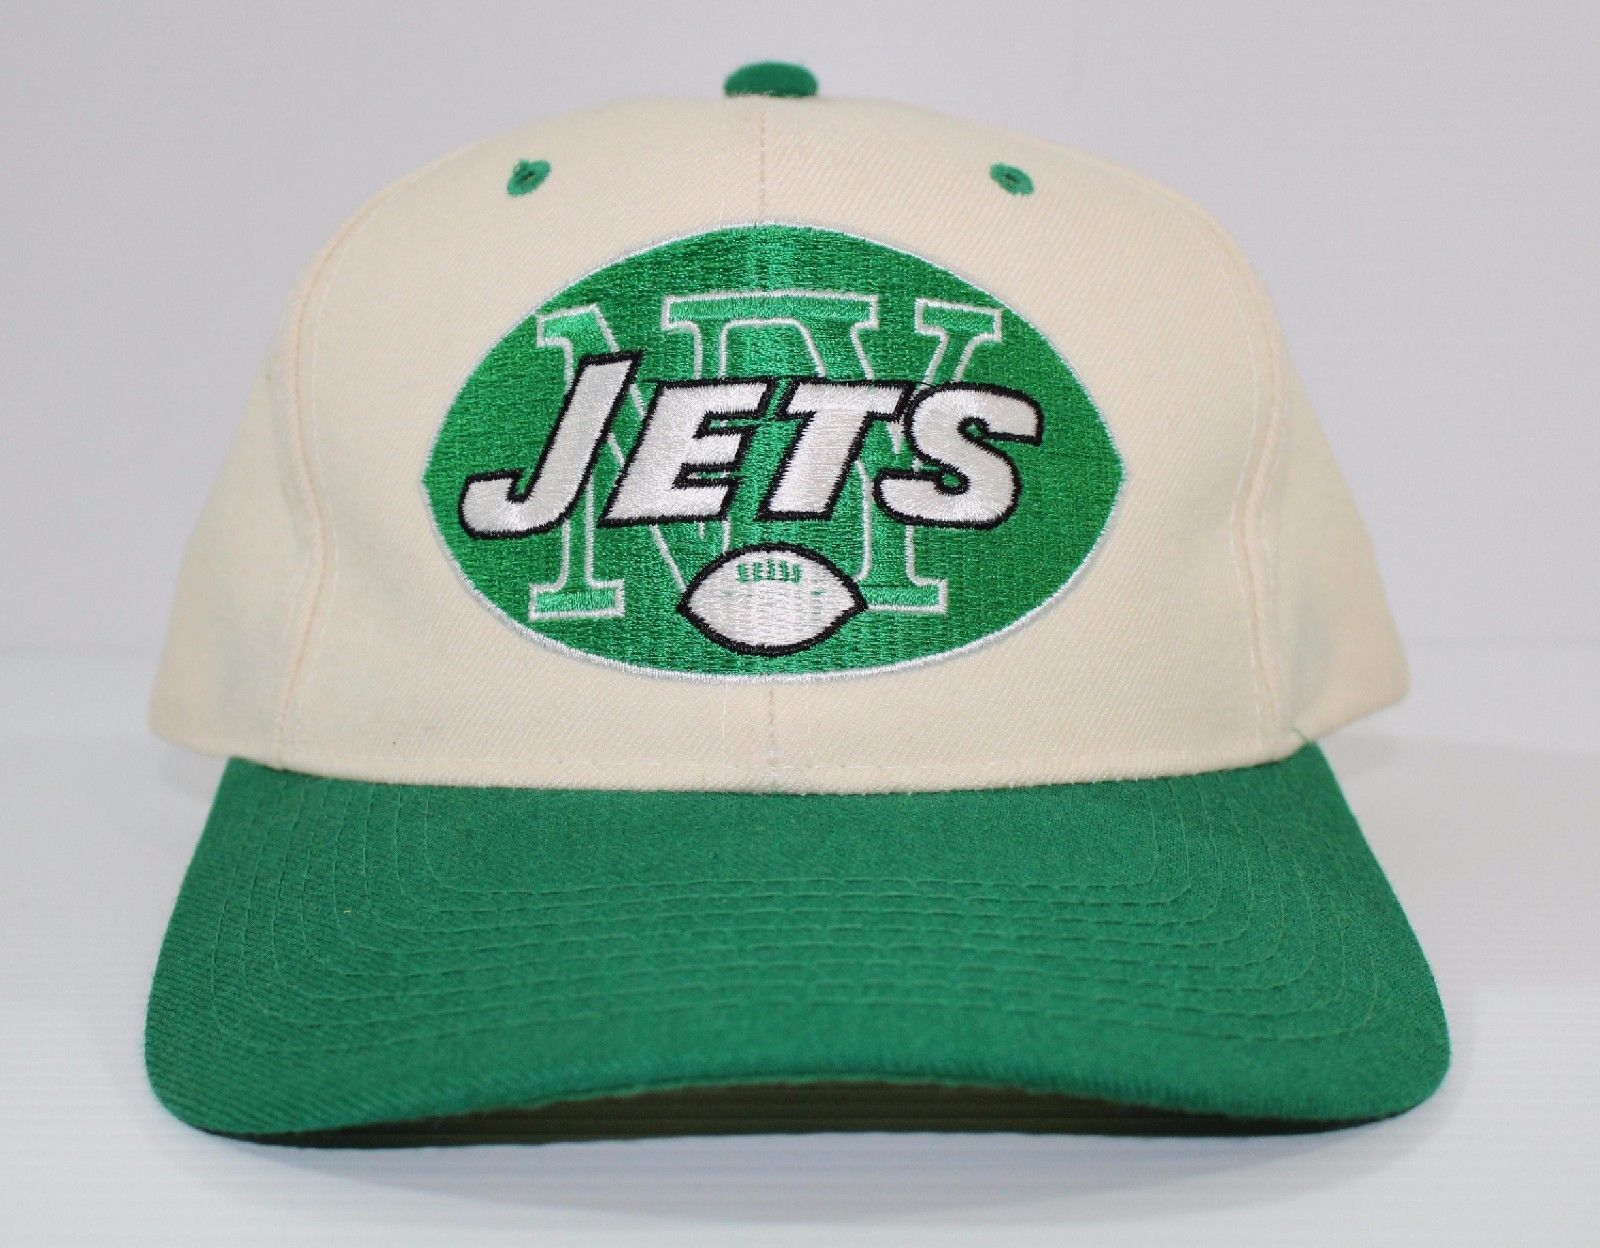 6ba31fc3 ... sweden vintage new york jets football starter snapback hat 90s rare  please retweet 2bfa9 9dced